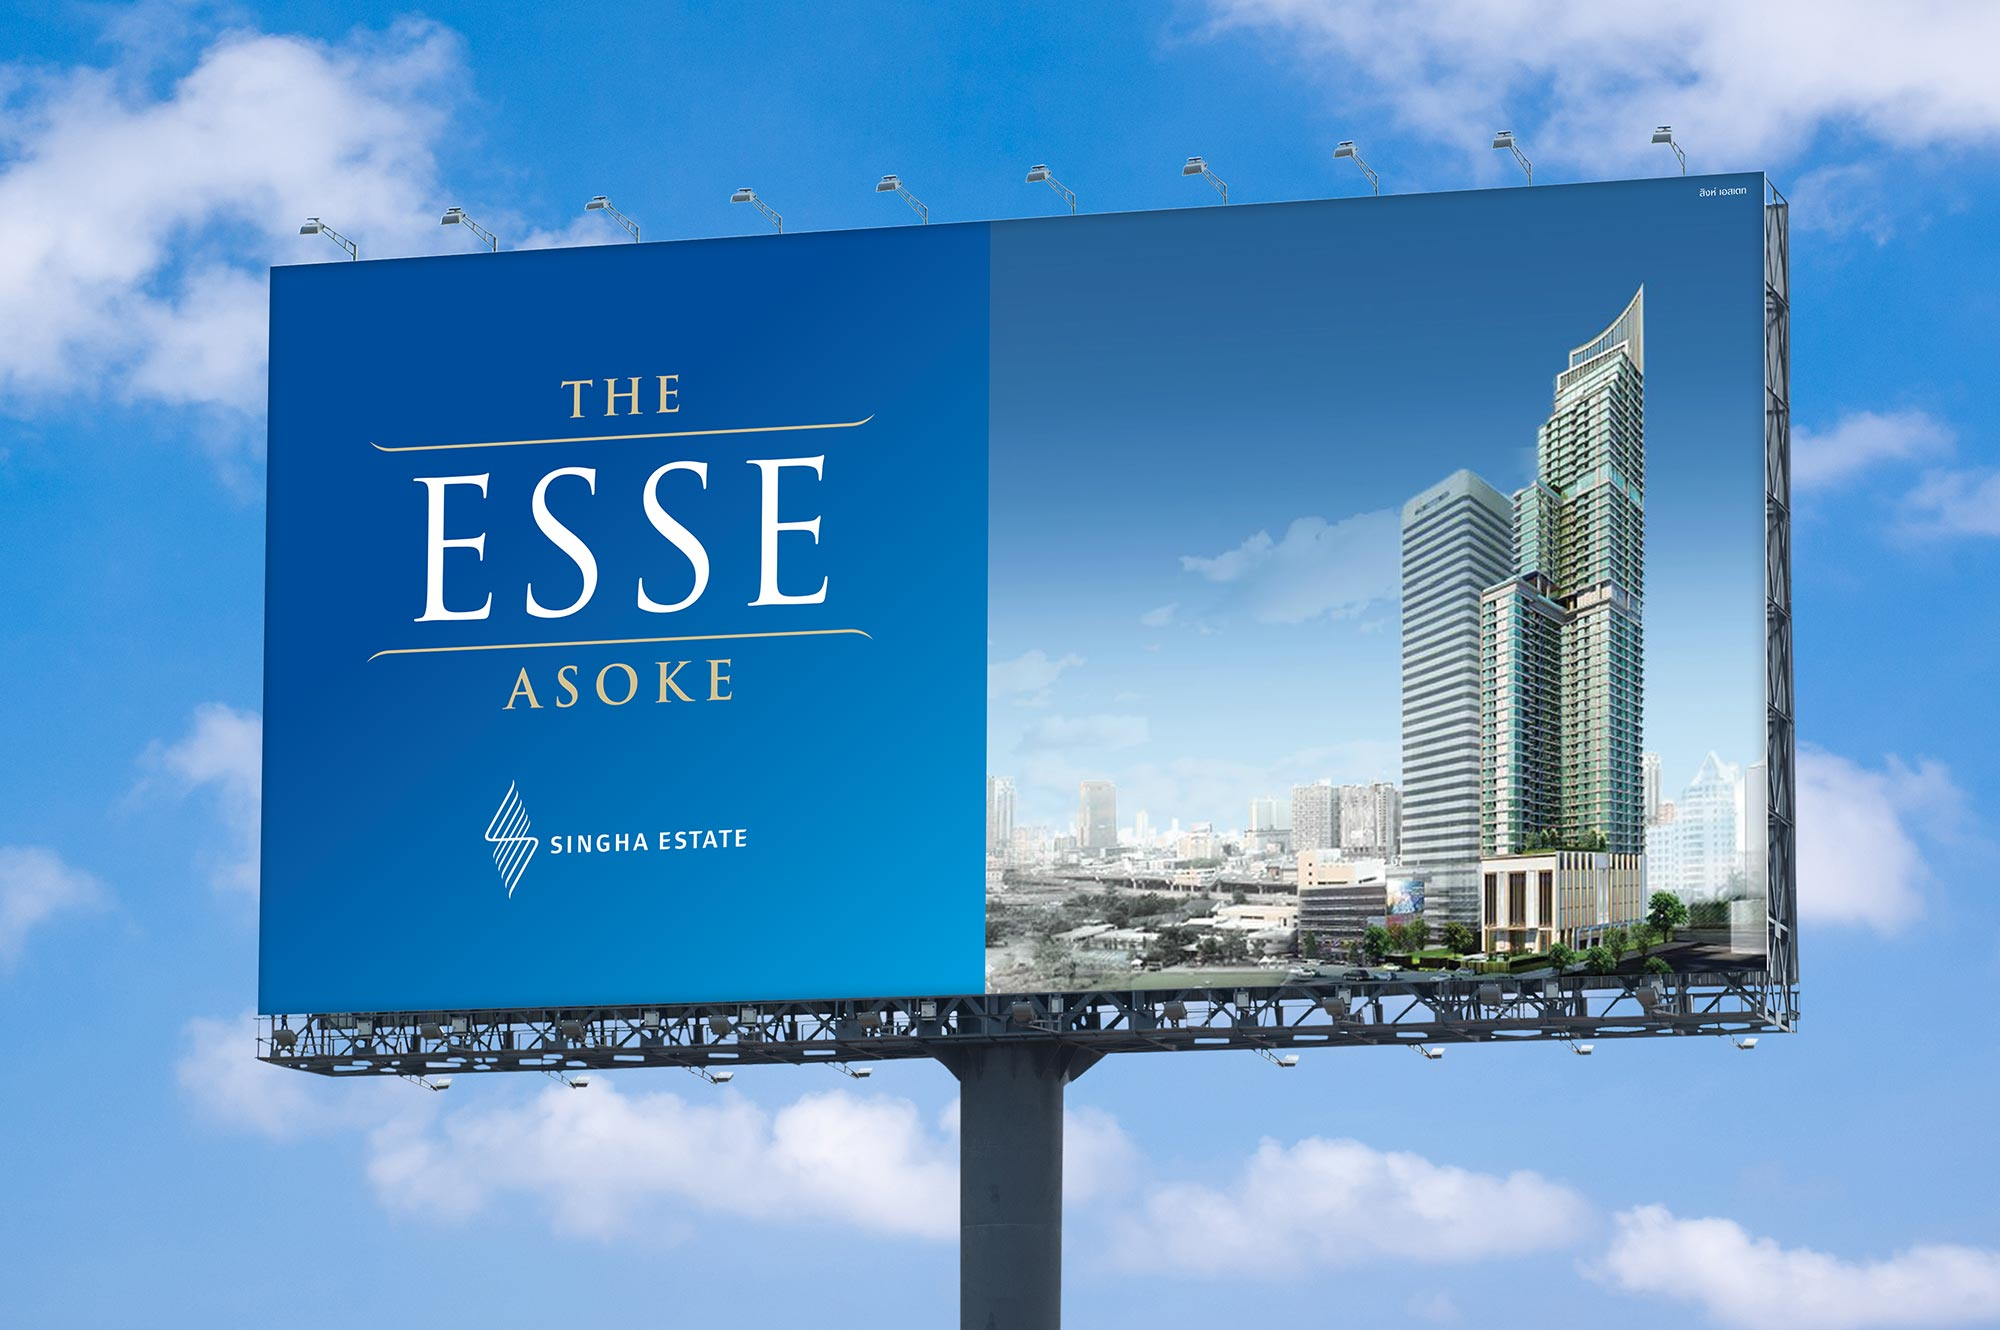 The ESSE Asoke Outdoor Advertising